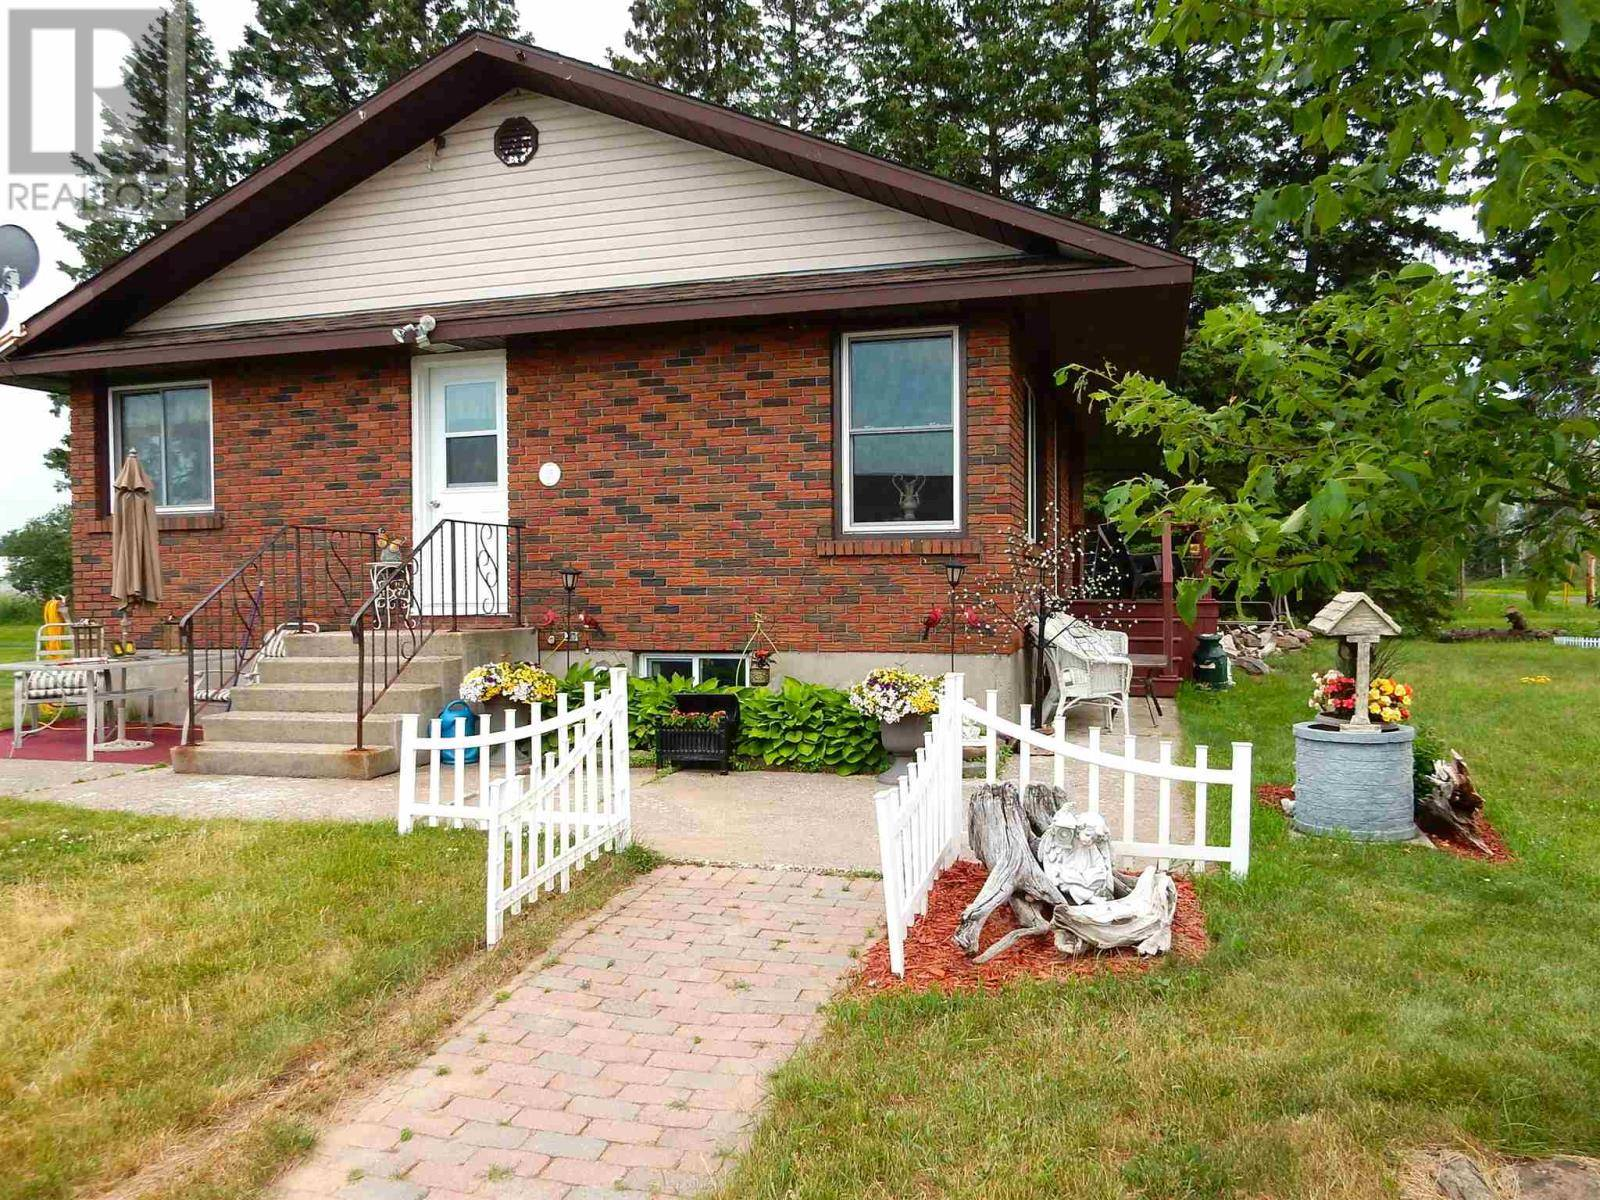 House for sale at 35 Bar River Rd W Echo Bay Ontario - MLS: SM125035